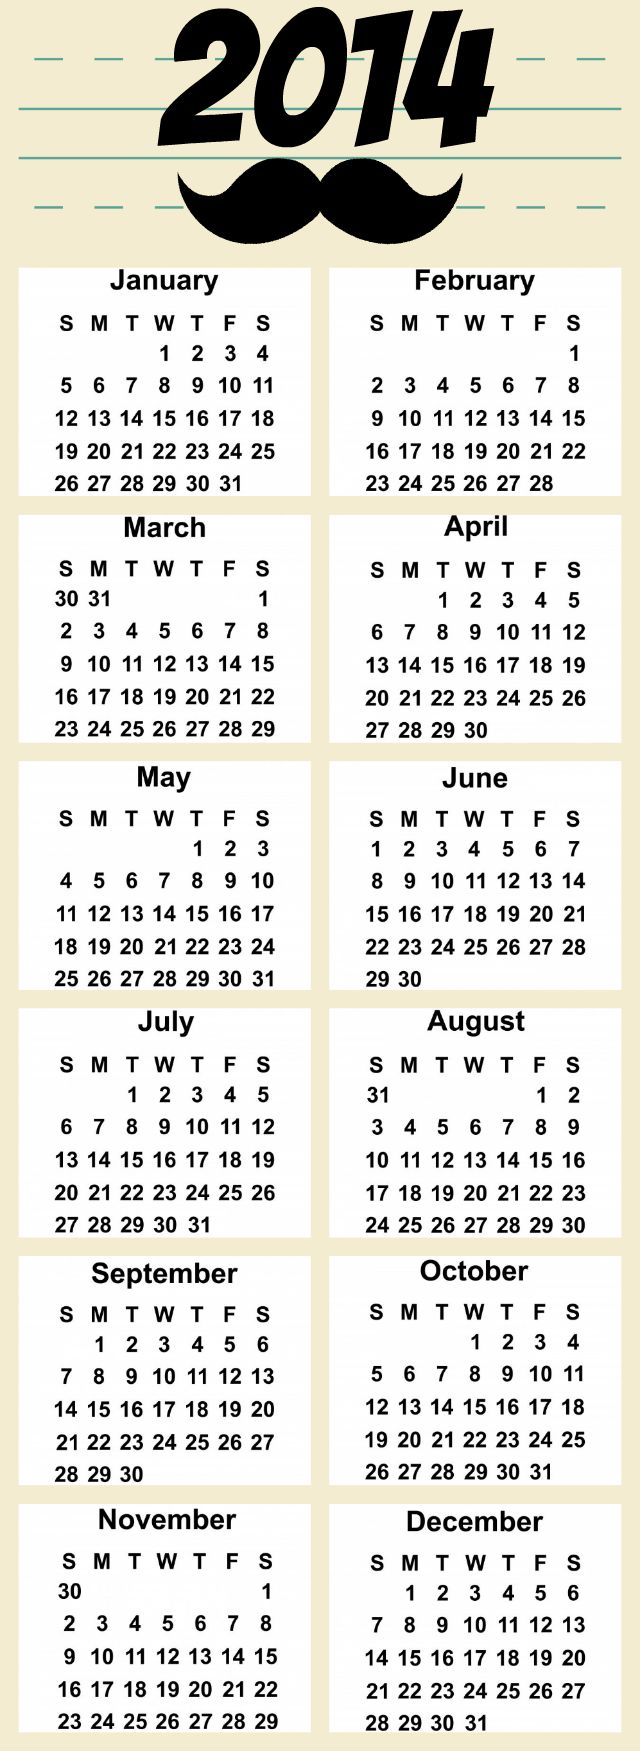 Yearly Calendar Ideas : Best ideas about yearly calendar on pinterest